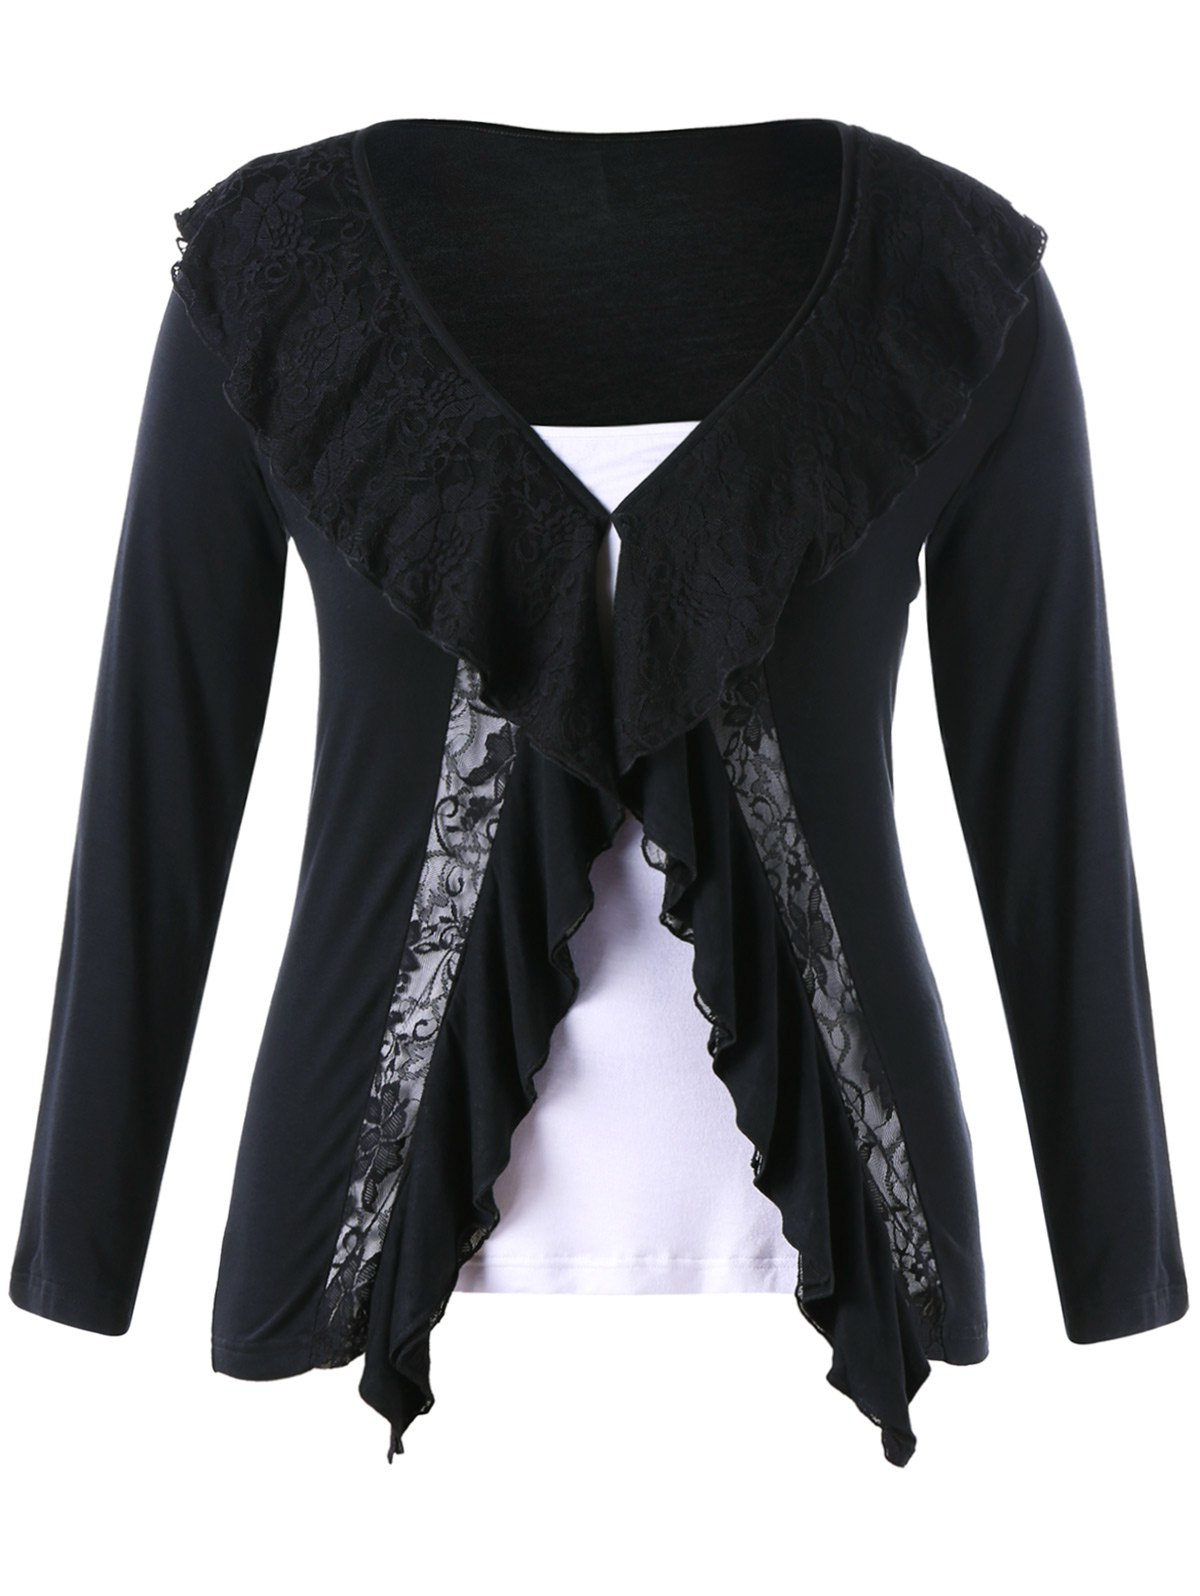 Plus Size Lace Panel Two Tone TopWOMEN<br><br>Size: 5XL; Color: BLACK; Material: Polyester; Shirt Length: Long; Sleeve Length: Full; Collar: Turn-down Collar; Style: Lolita; Season: Summer; Pattern Type: Solid; Weight: 0.3400kg; Package Contents: 1 x Top;